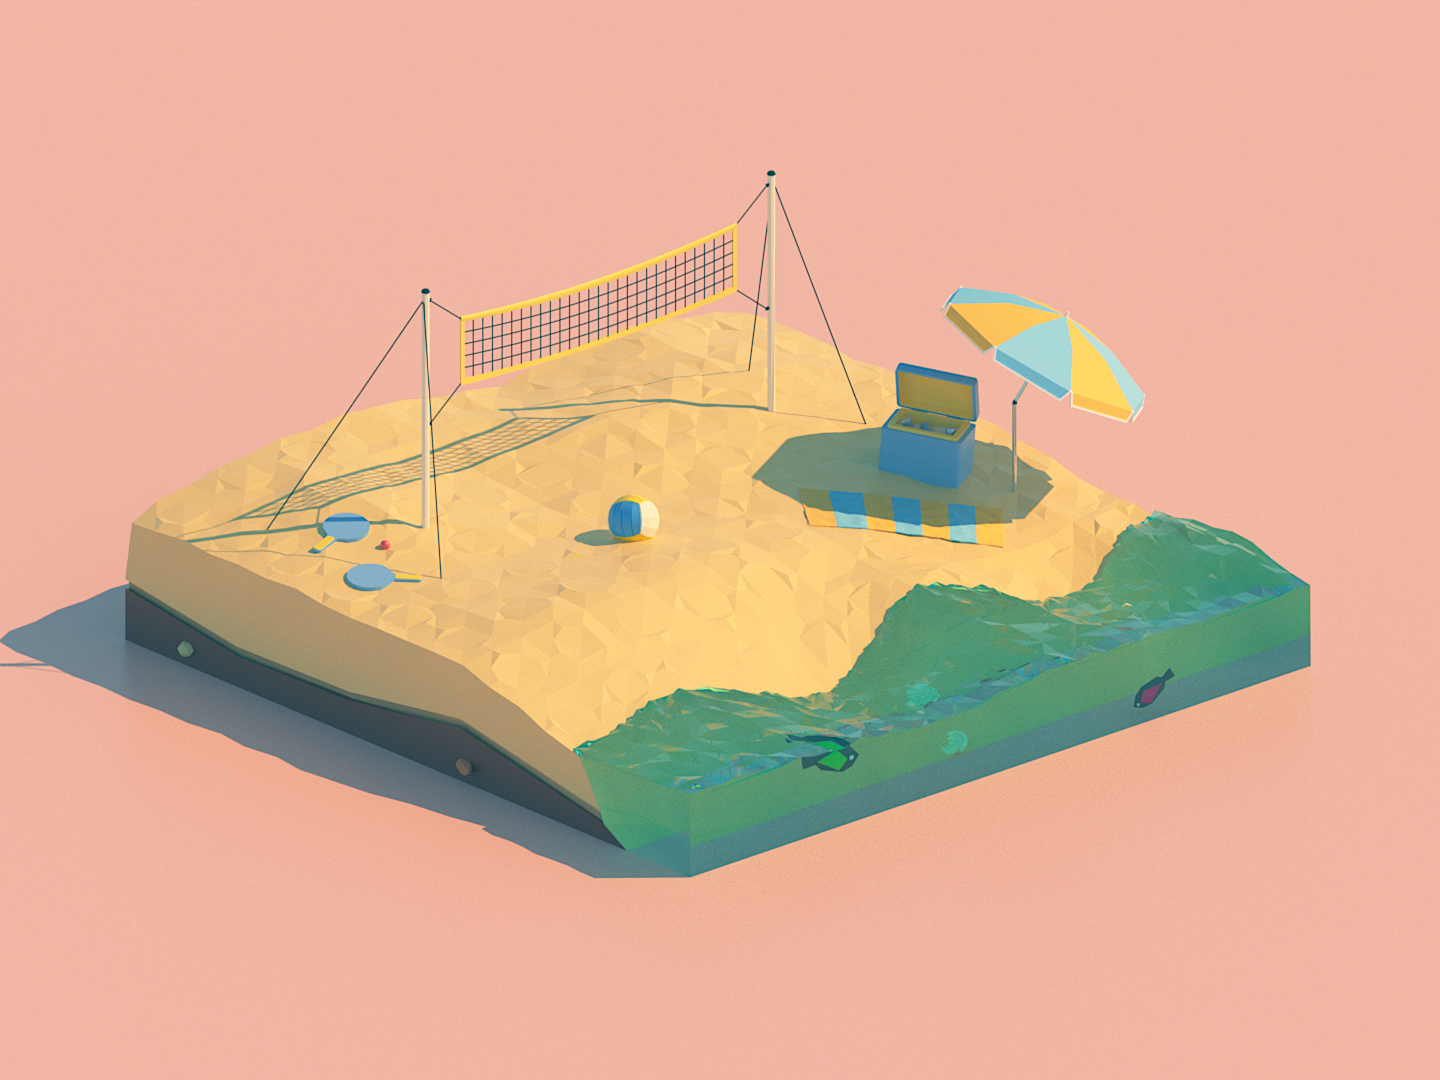 Beach Volley beach party ocean season volley beach minimalist illustration lowpoly isometric 3d